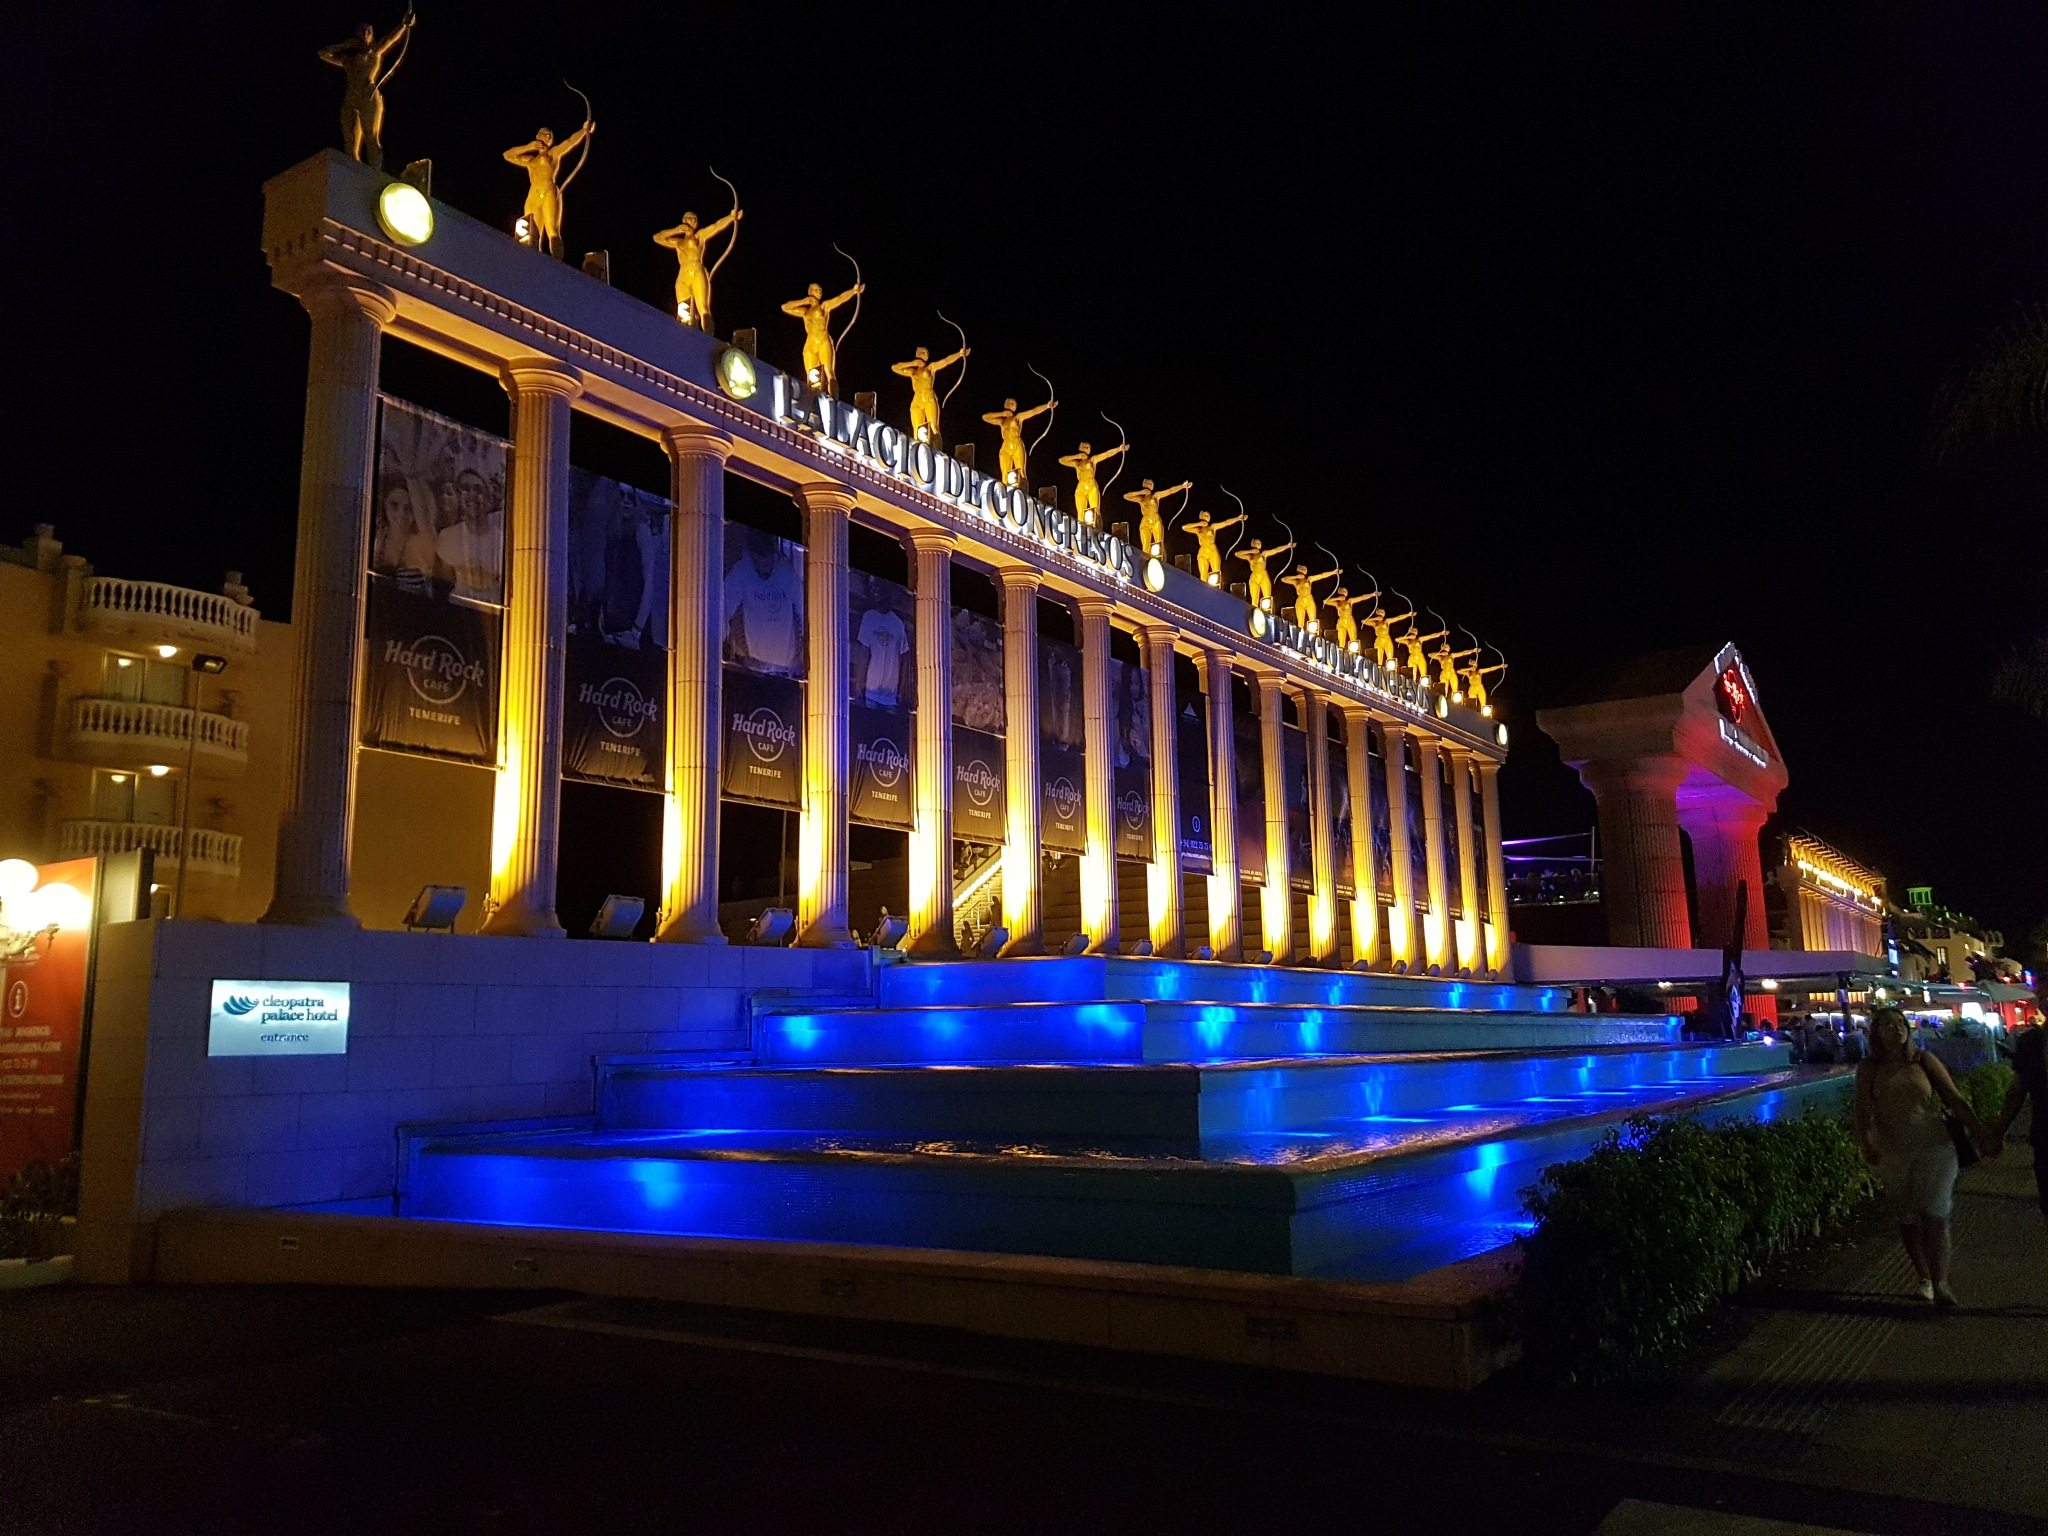 Cleopatra Palace by Luqal Photo